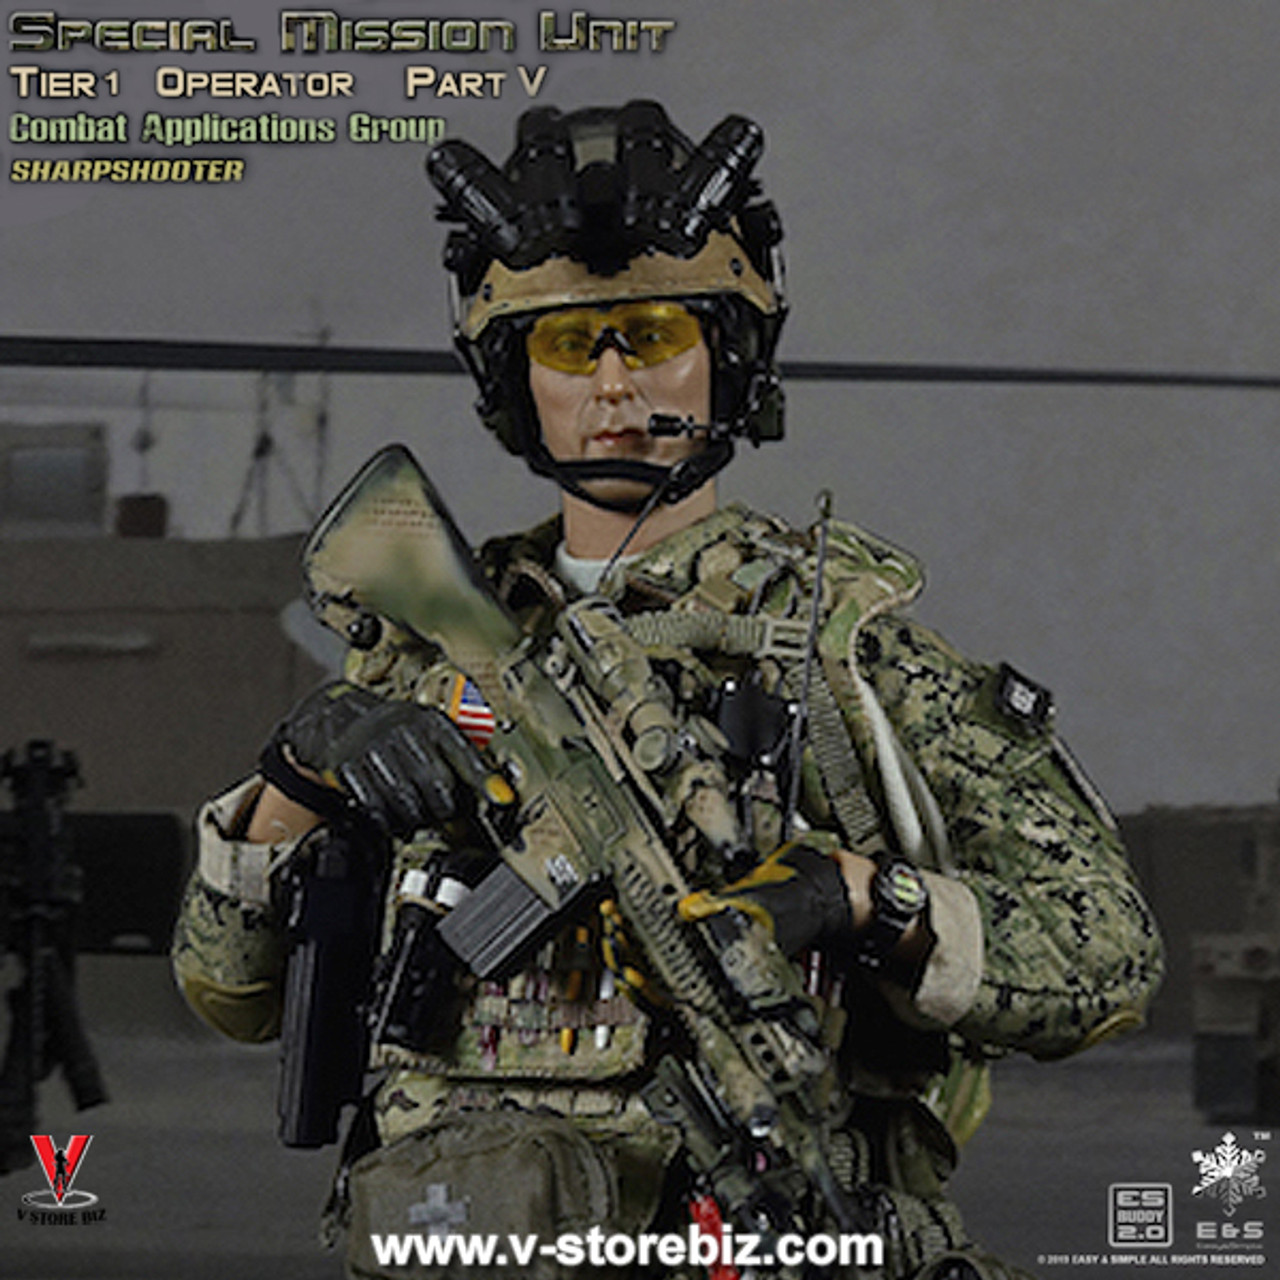 e s 26020s tier 1 smu part v cag sharpshooter limited edition